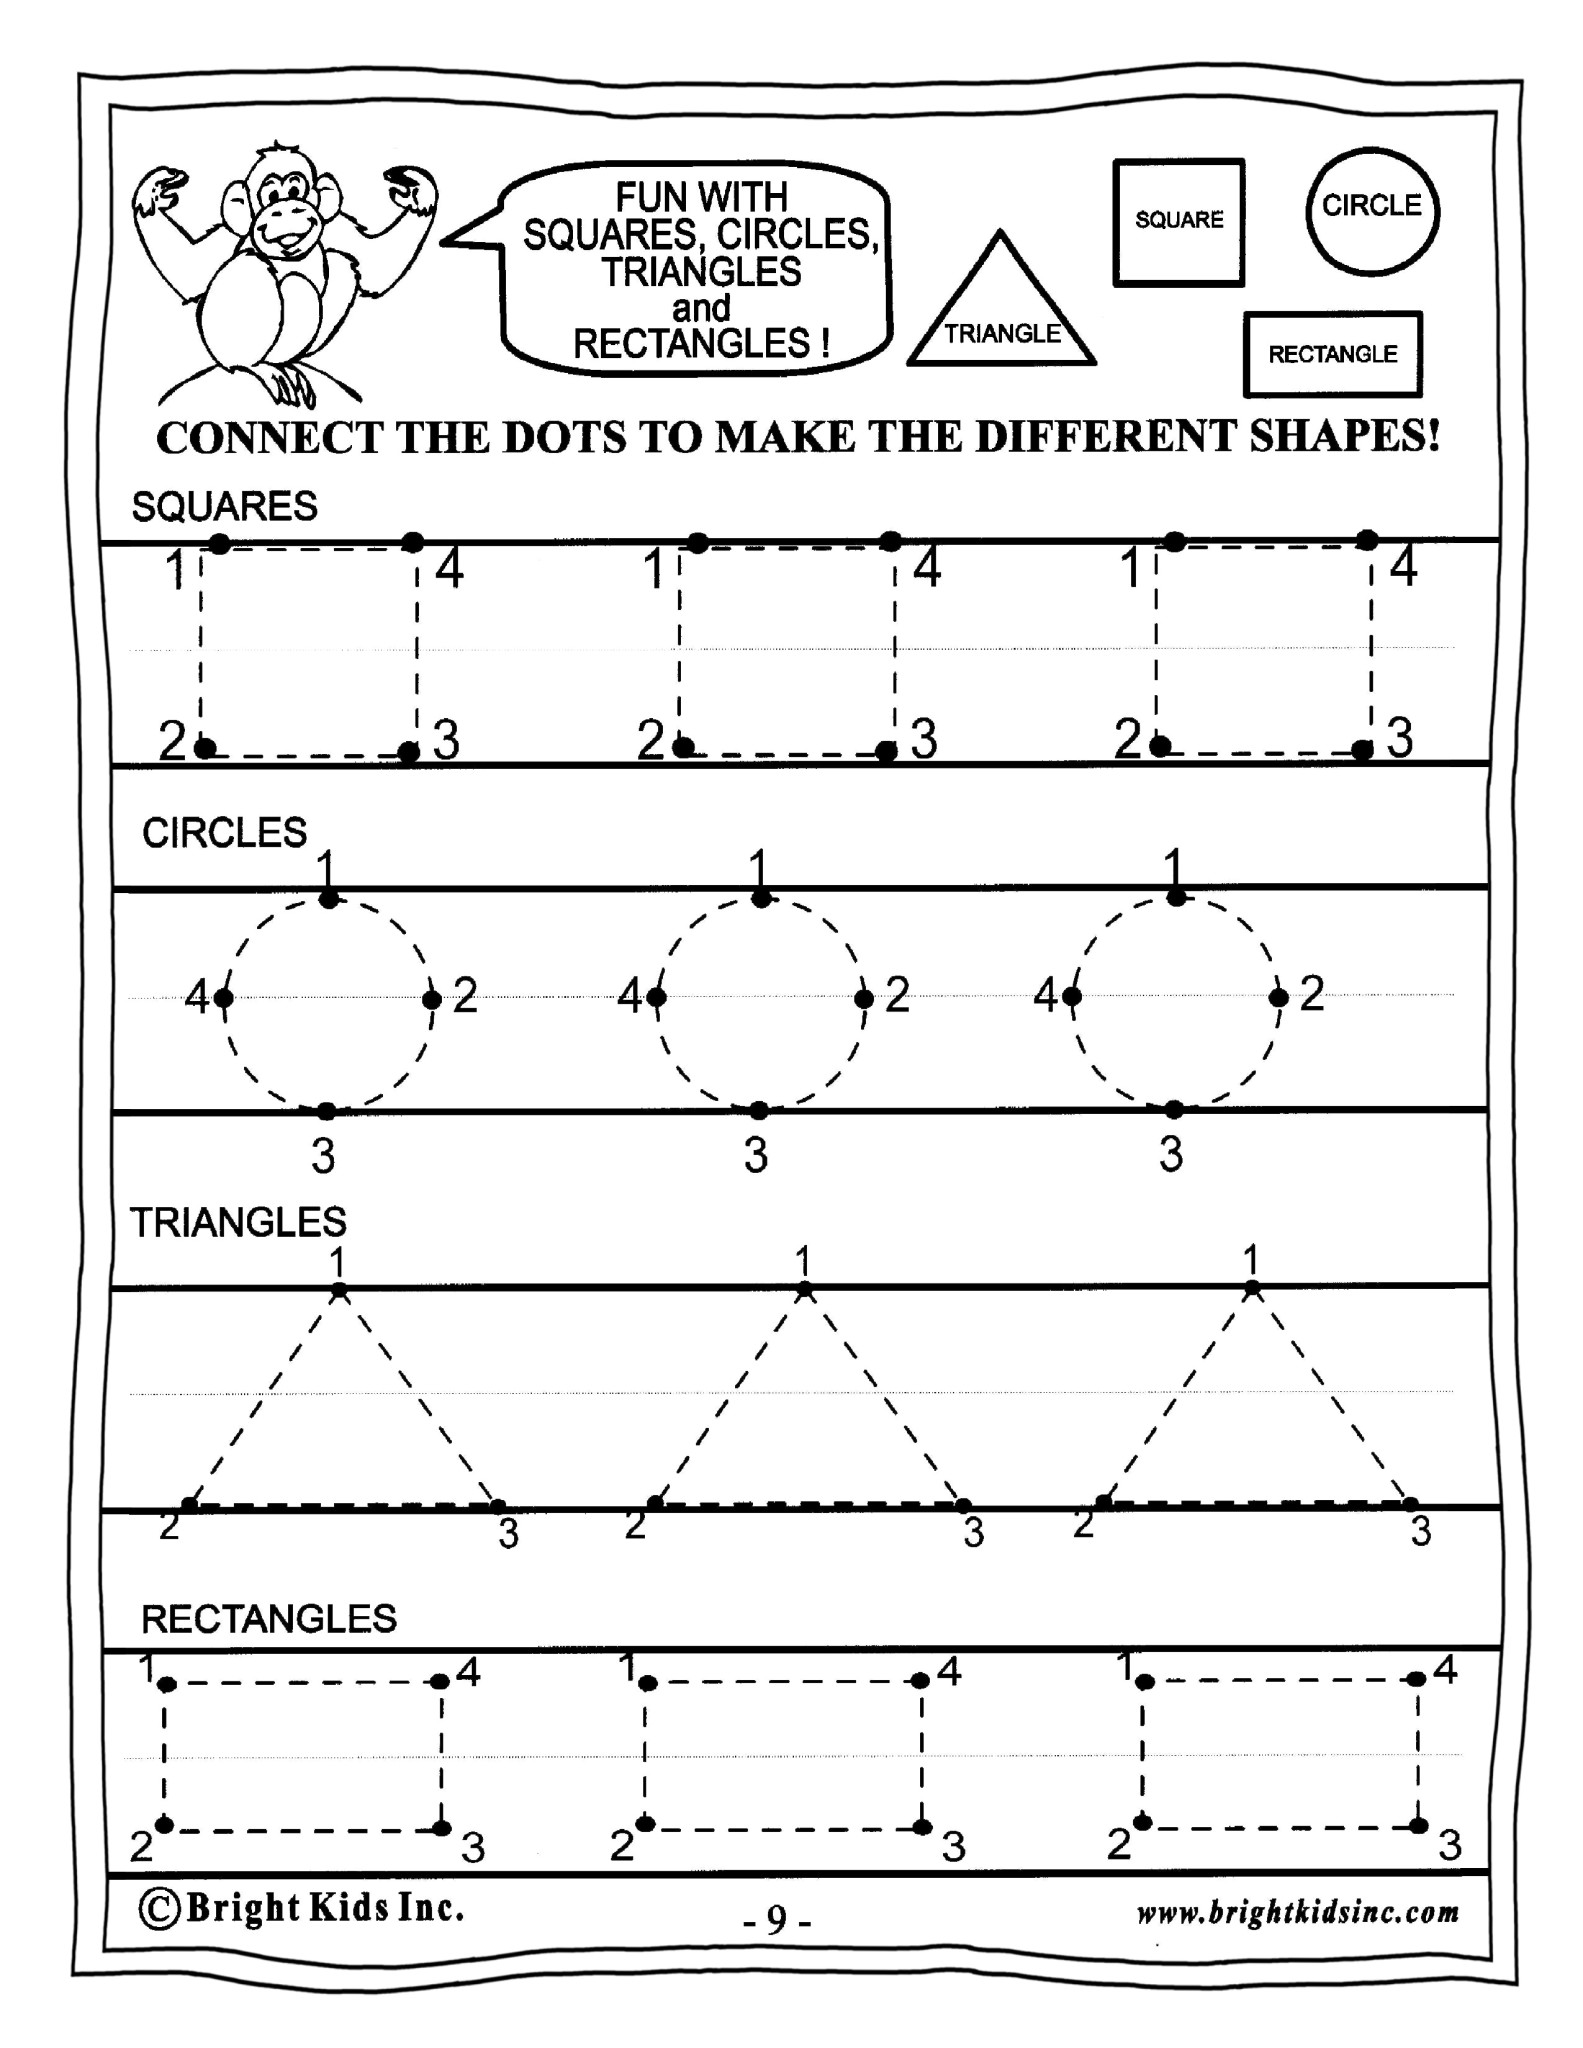 Worksheet Preschool Math preschool math power workout free sample 1b 2015 binder2 page 11